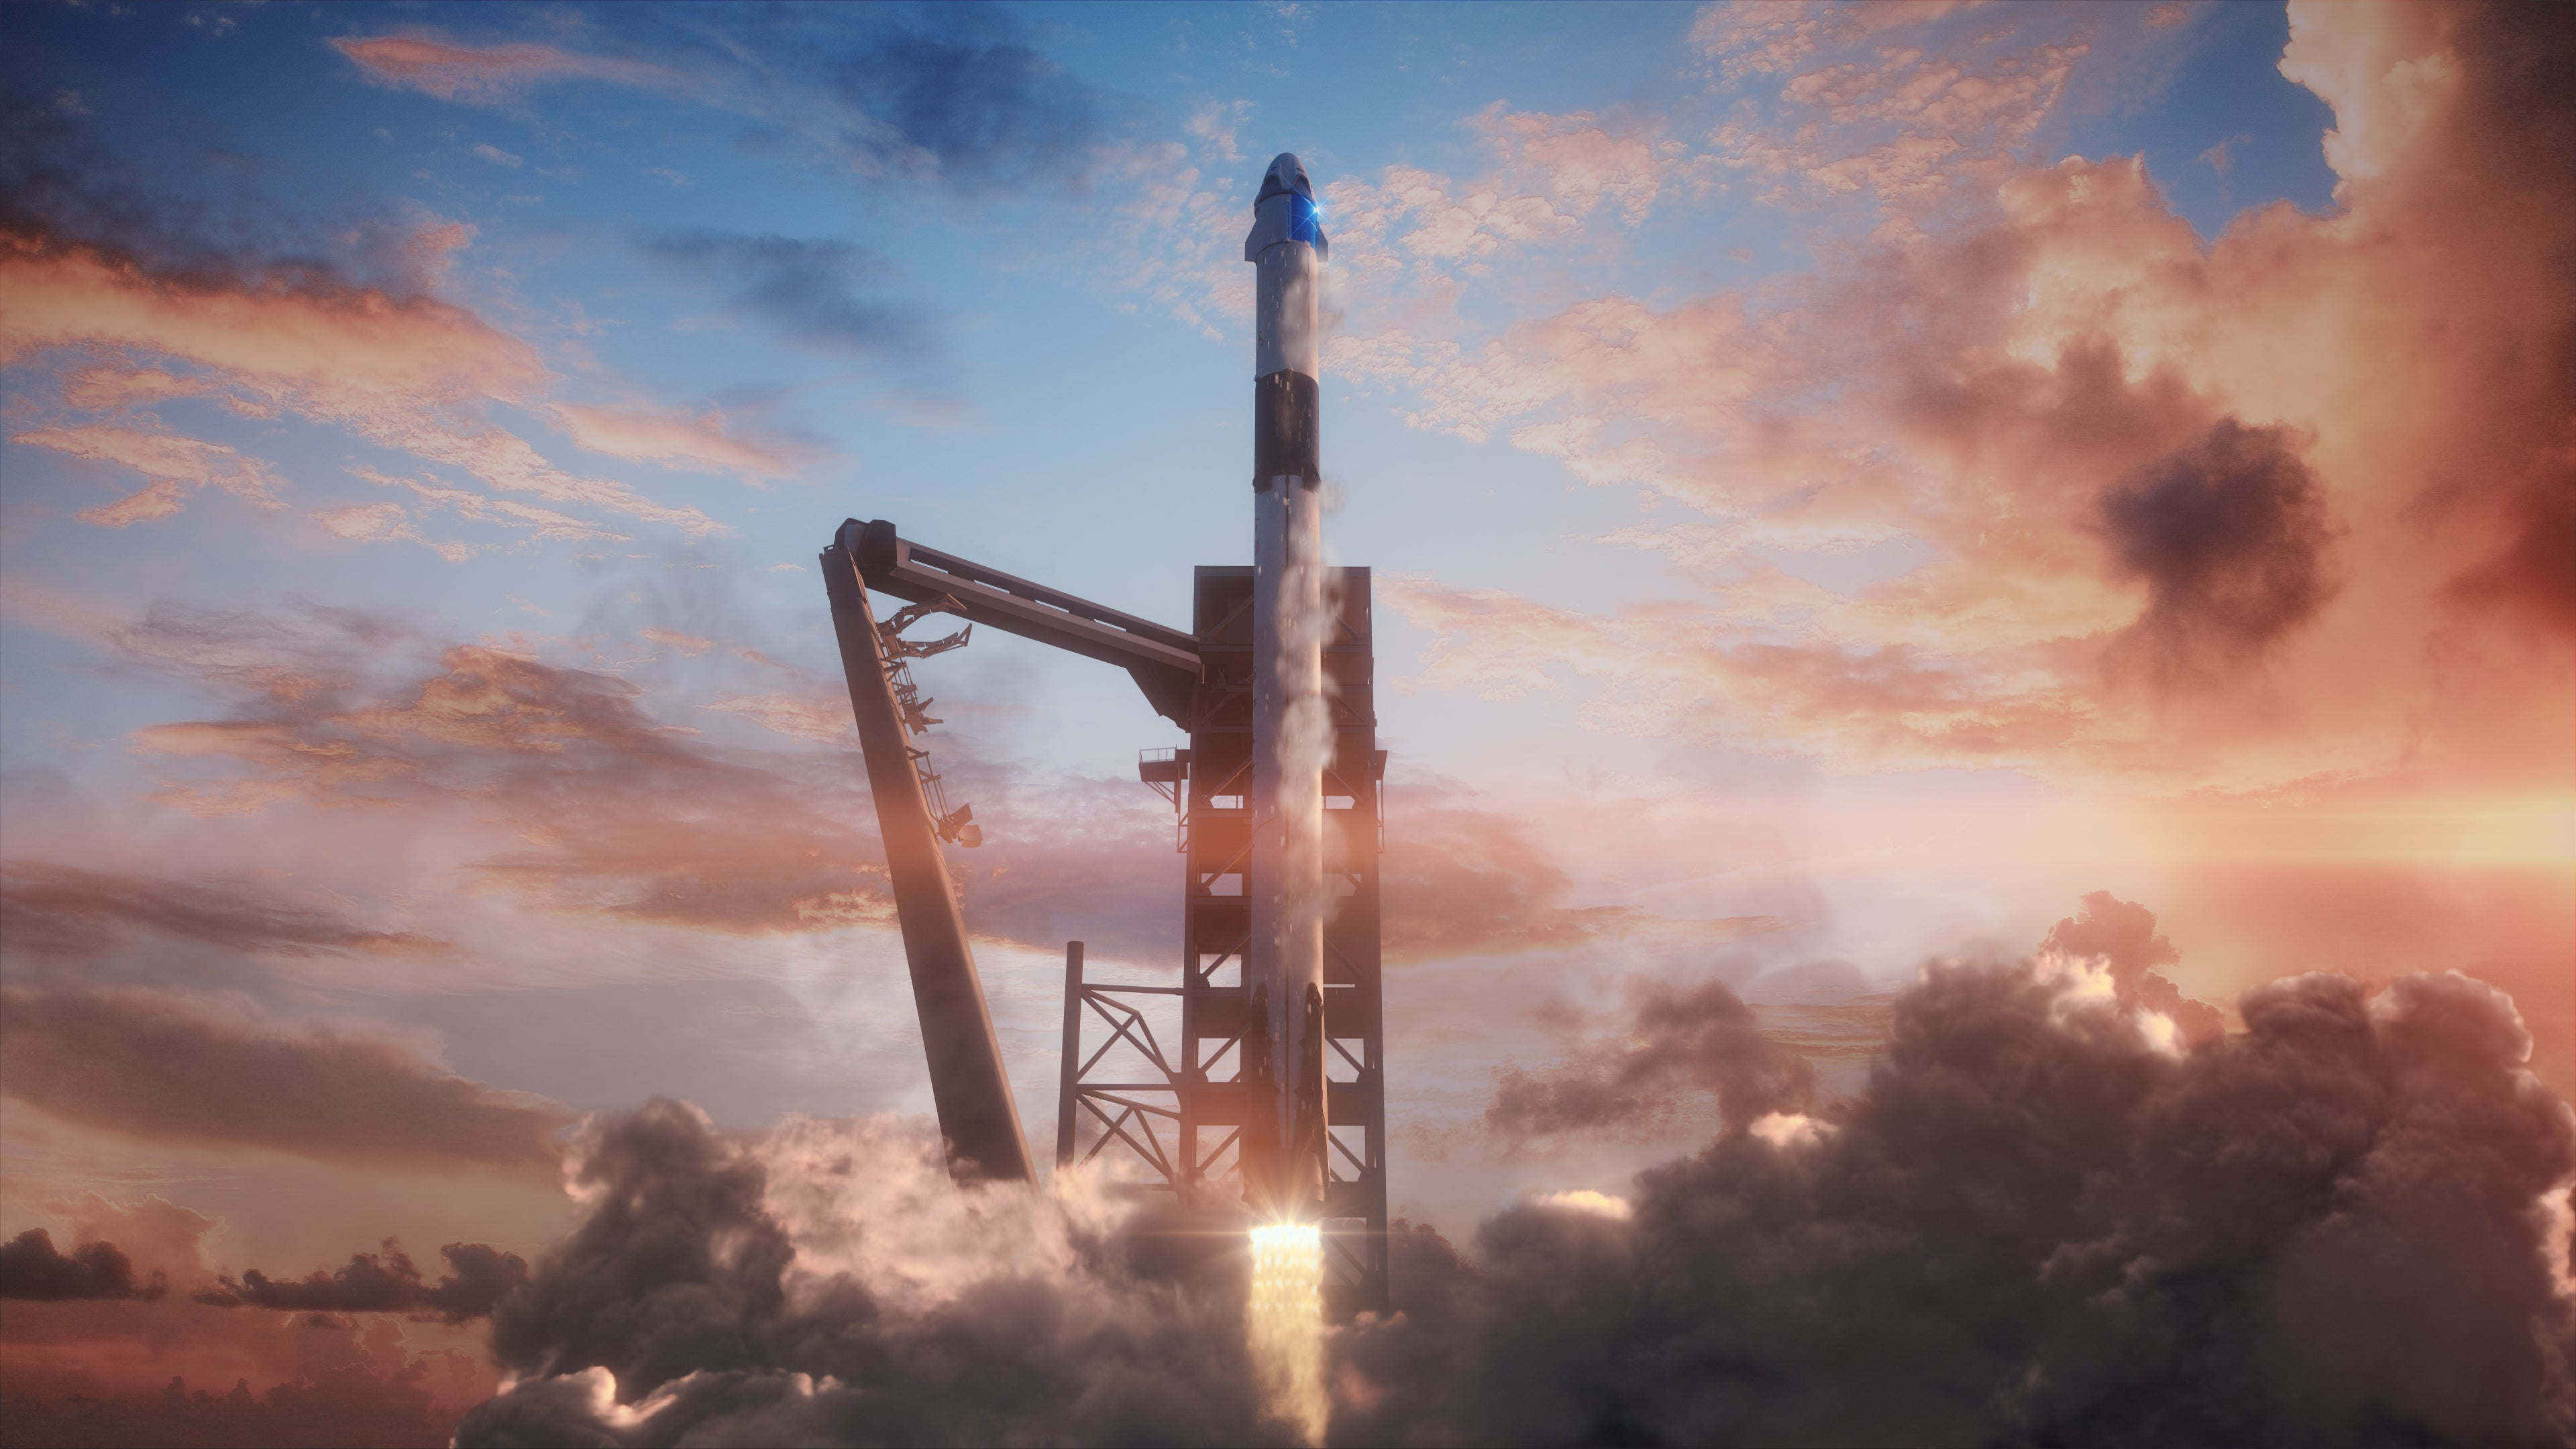 NASA Finally Schedules Test Of SpaceX Spacecraft Designed For Astronauts